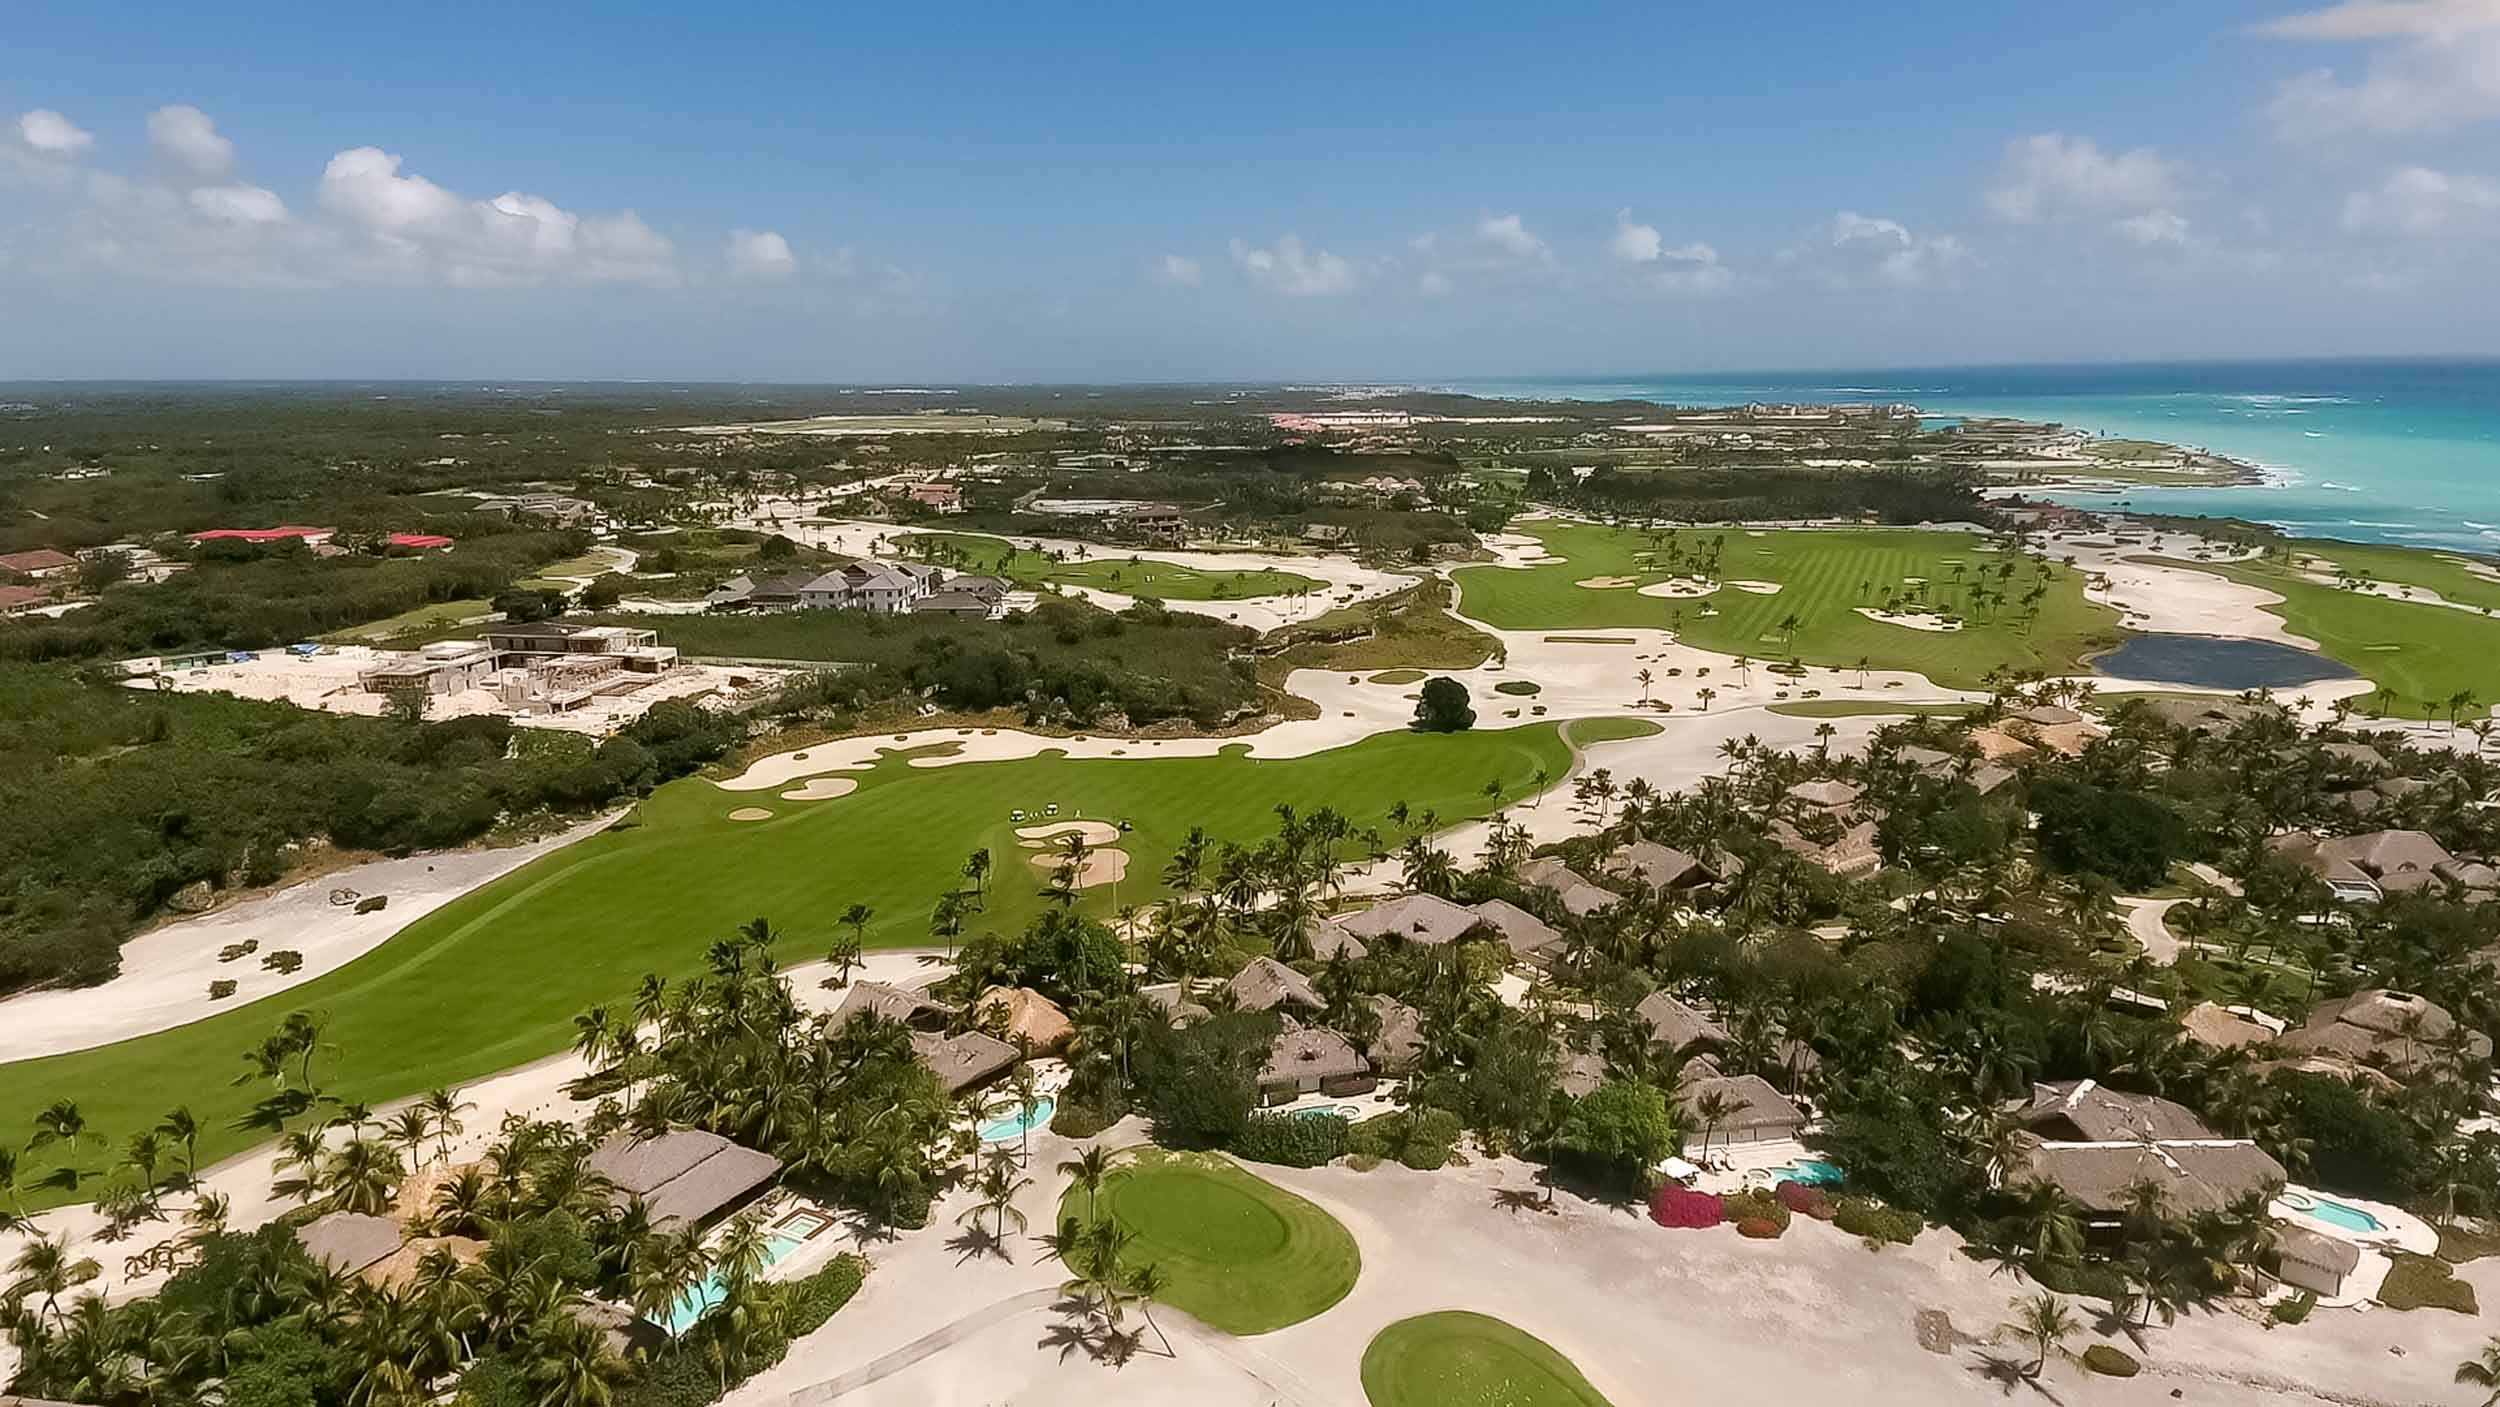 Villa Caleton 14 combines the beach and golf lifestyles thanks to its spectacular setting on the 16th hole of the Punta Espada Golf Course in Cap Cana, Dominican Republic. Host of the PGA Tour's Champions Tour from 2008-2010, the par 72, Jack Nicklaus signature course offers challenging stroke play against the backdrop of the Caribbean Sea.